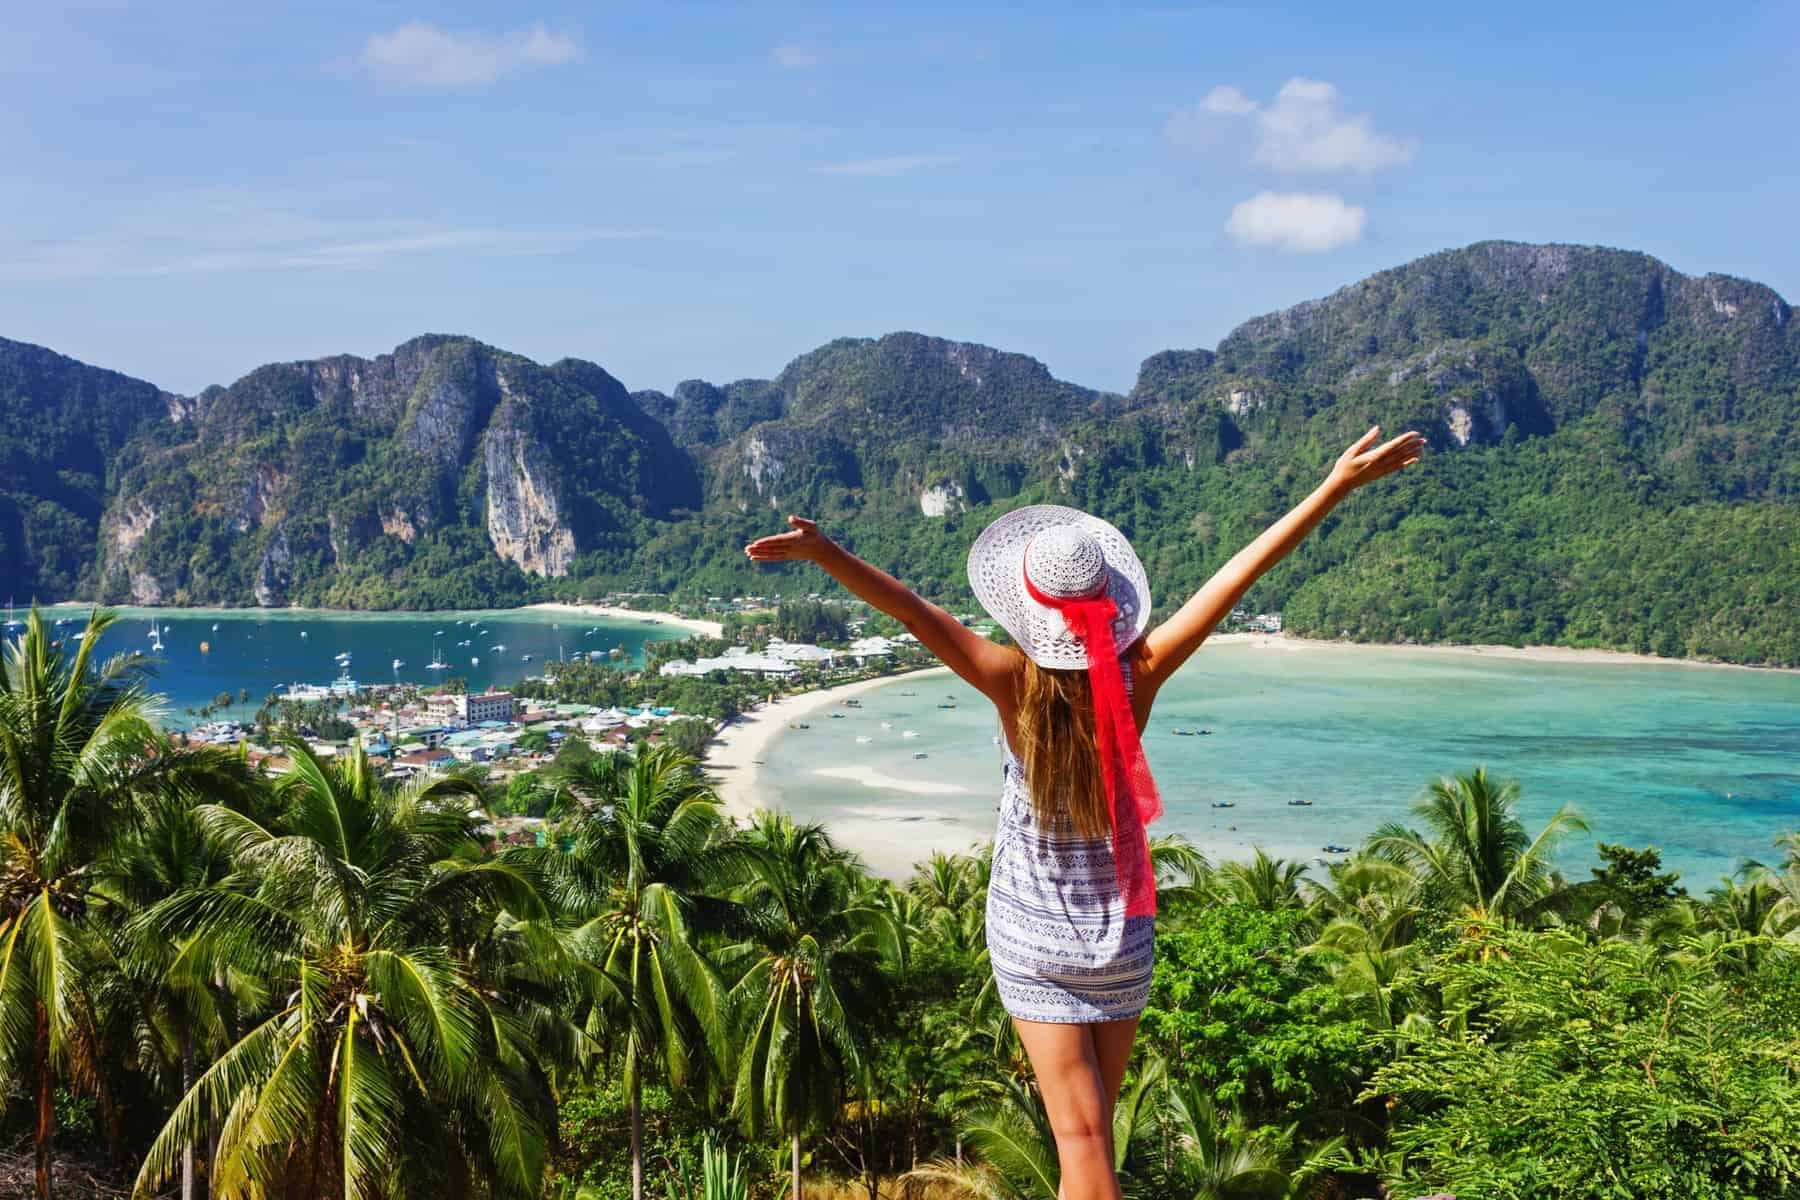 Girl at the resort in the bays of the island of Phi Phi Don